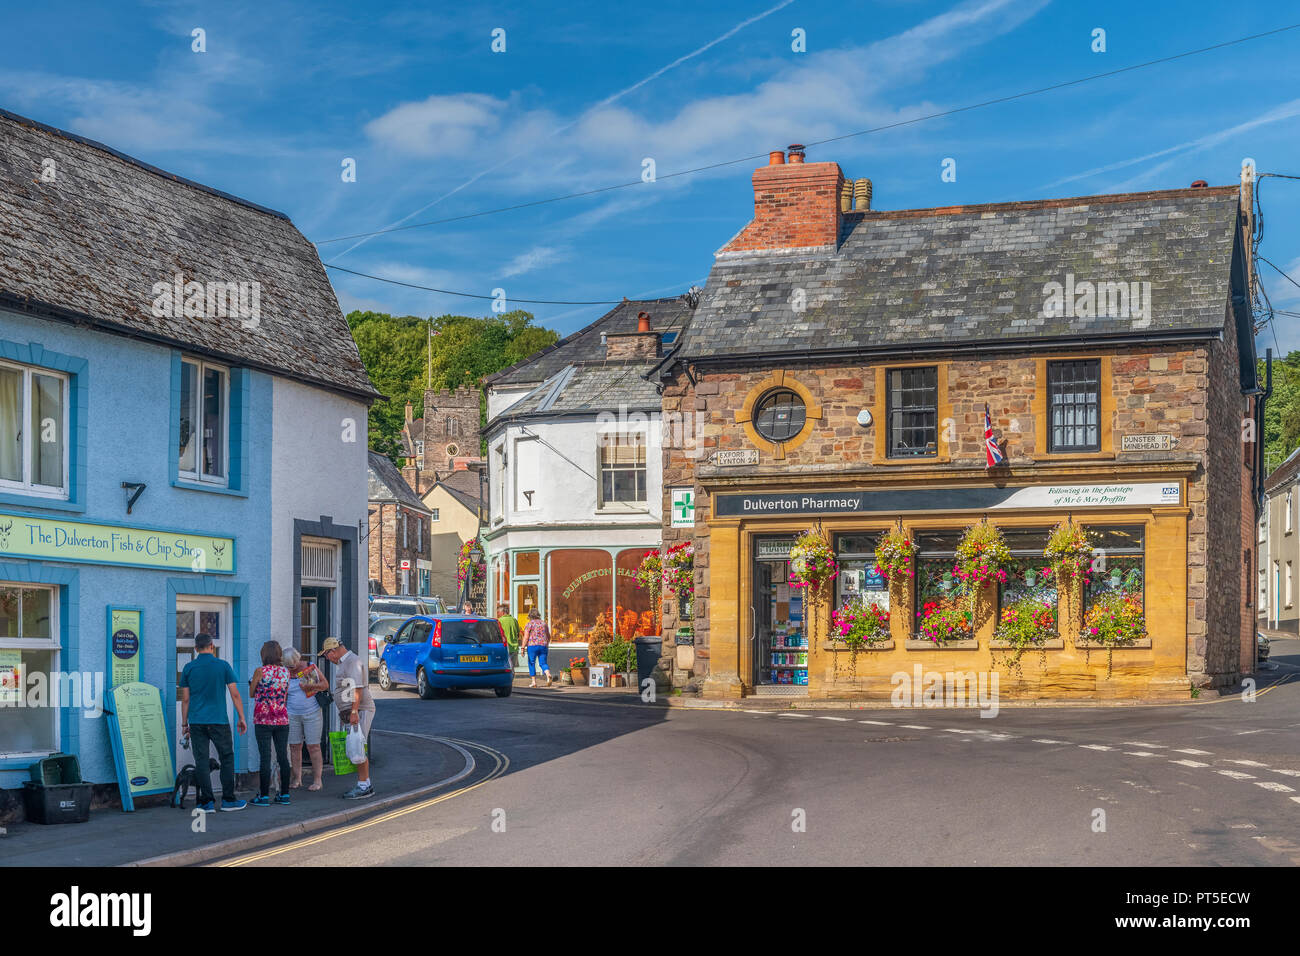 Visitors enjoy the summer sunshine in the small town of Dulverton in the heart of West Somerset. - Stock Image